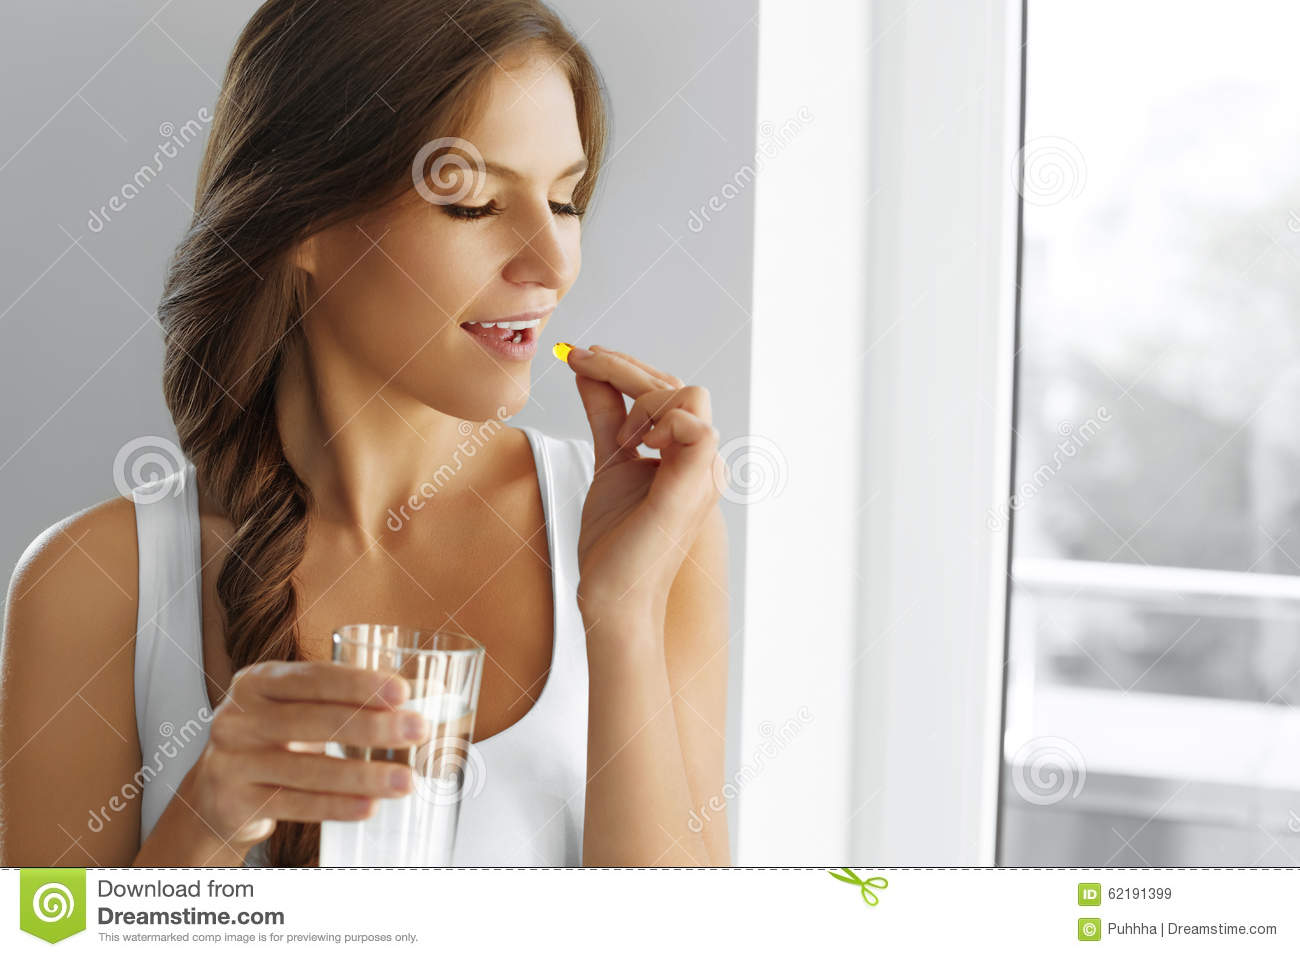 Healthy Diet. Nutrition. Vitamins. Healthy Eating, Lifestyle. Woman With Fish Oil Capsules.